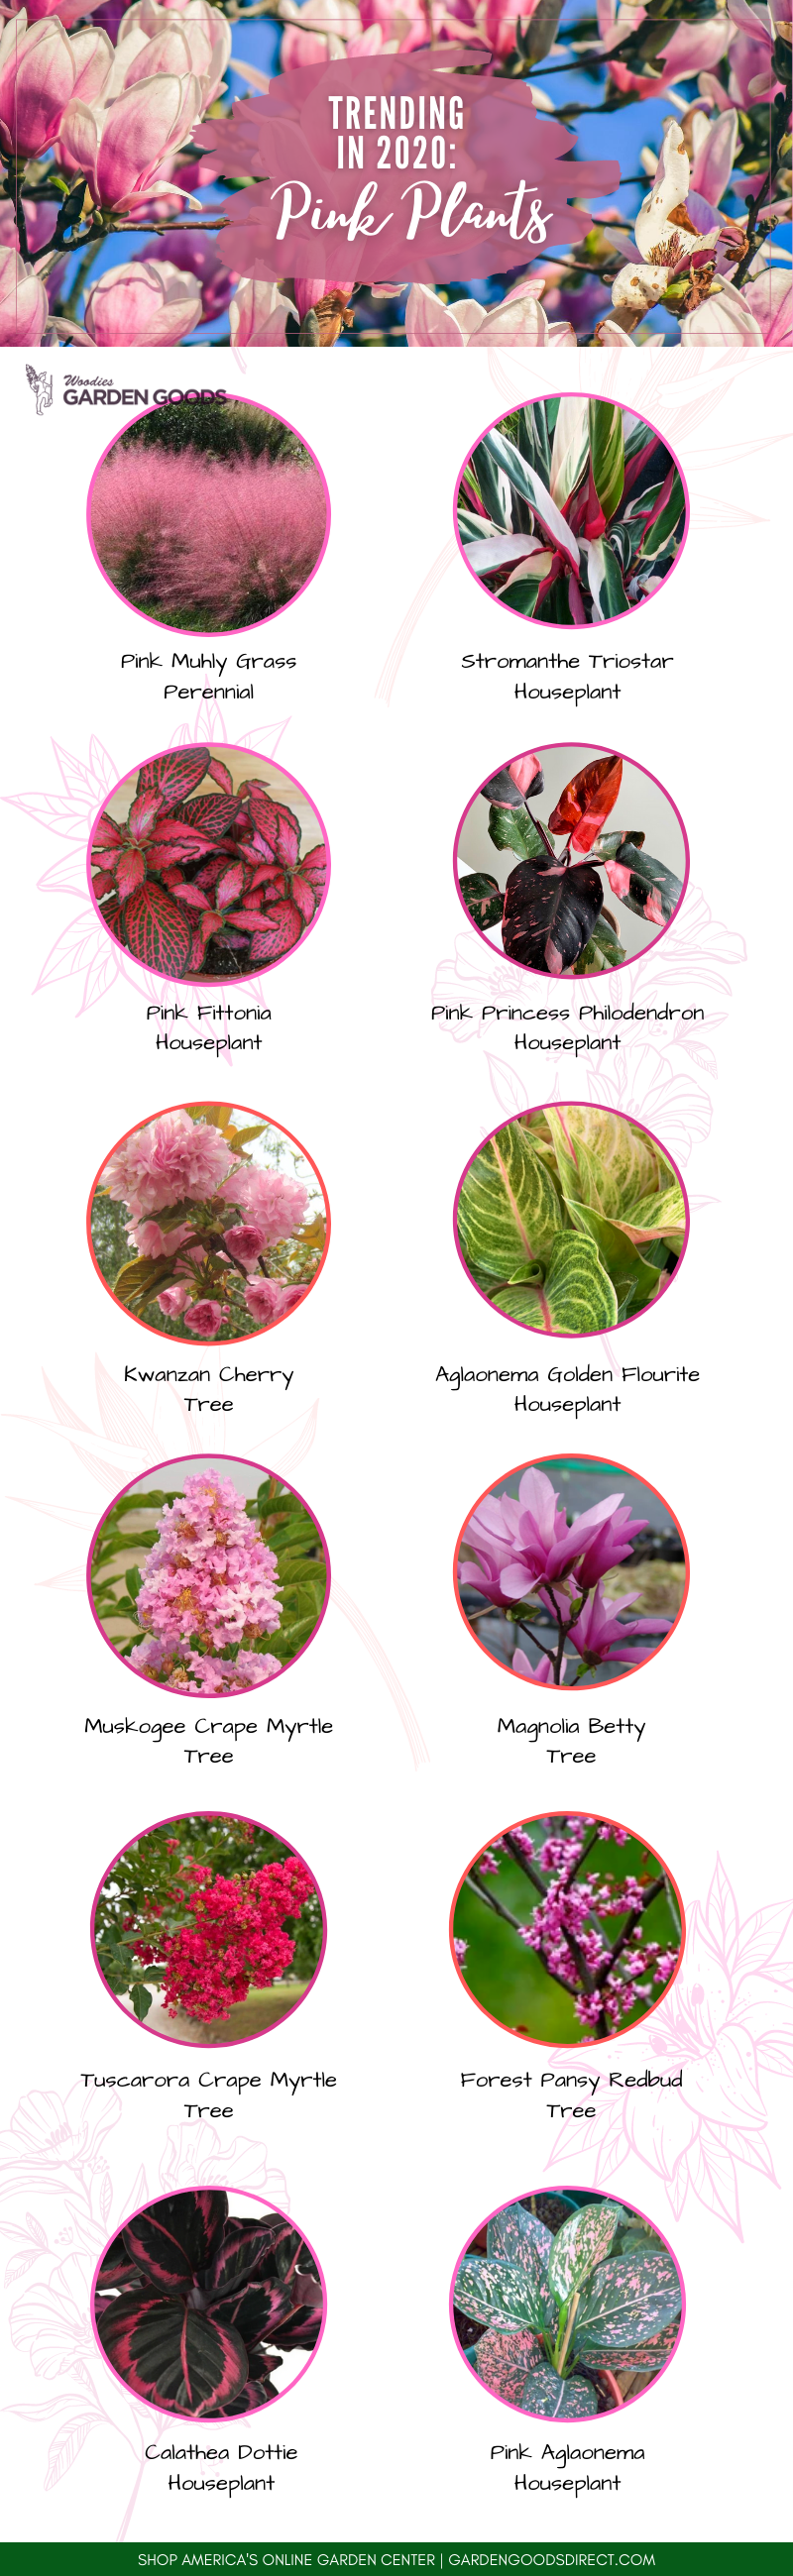 Pink plants for sale online